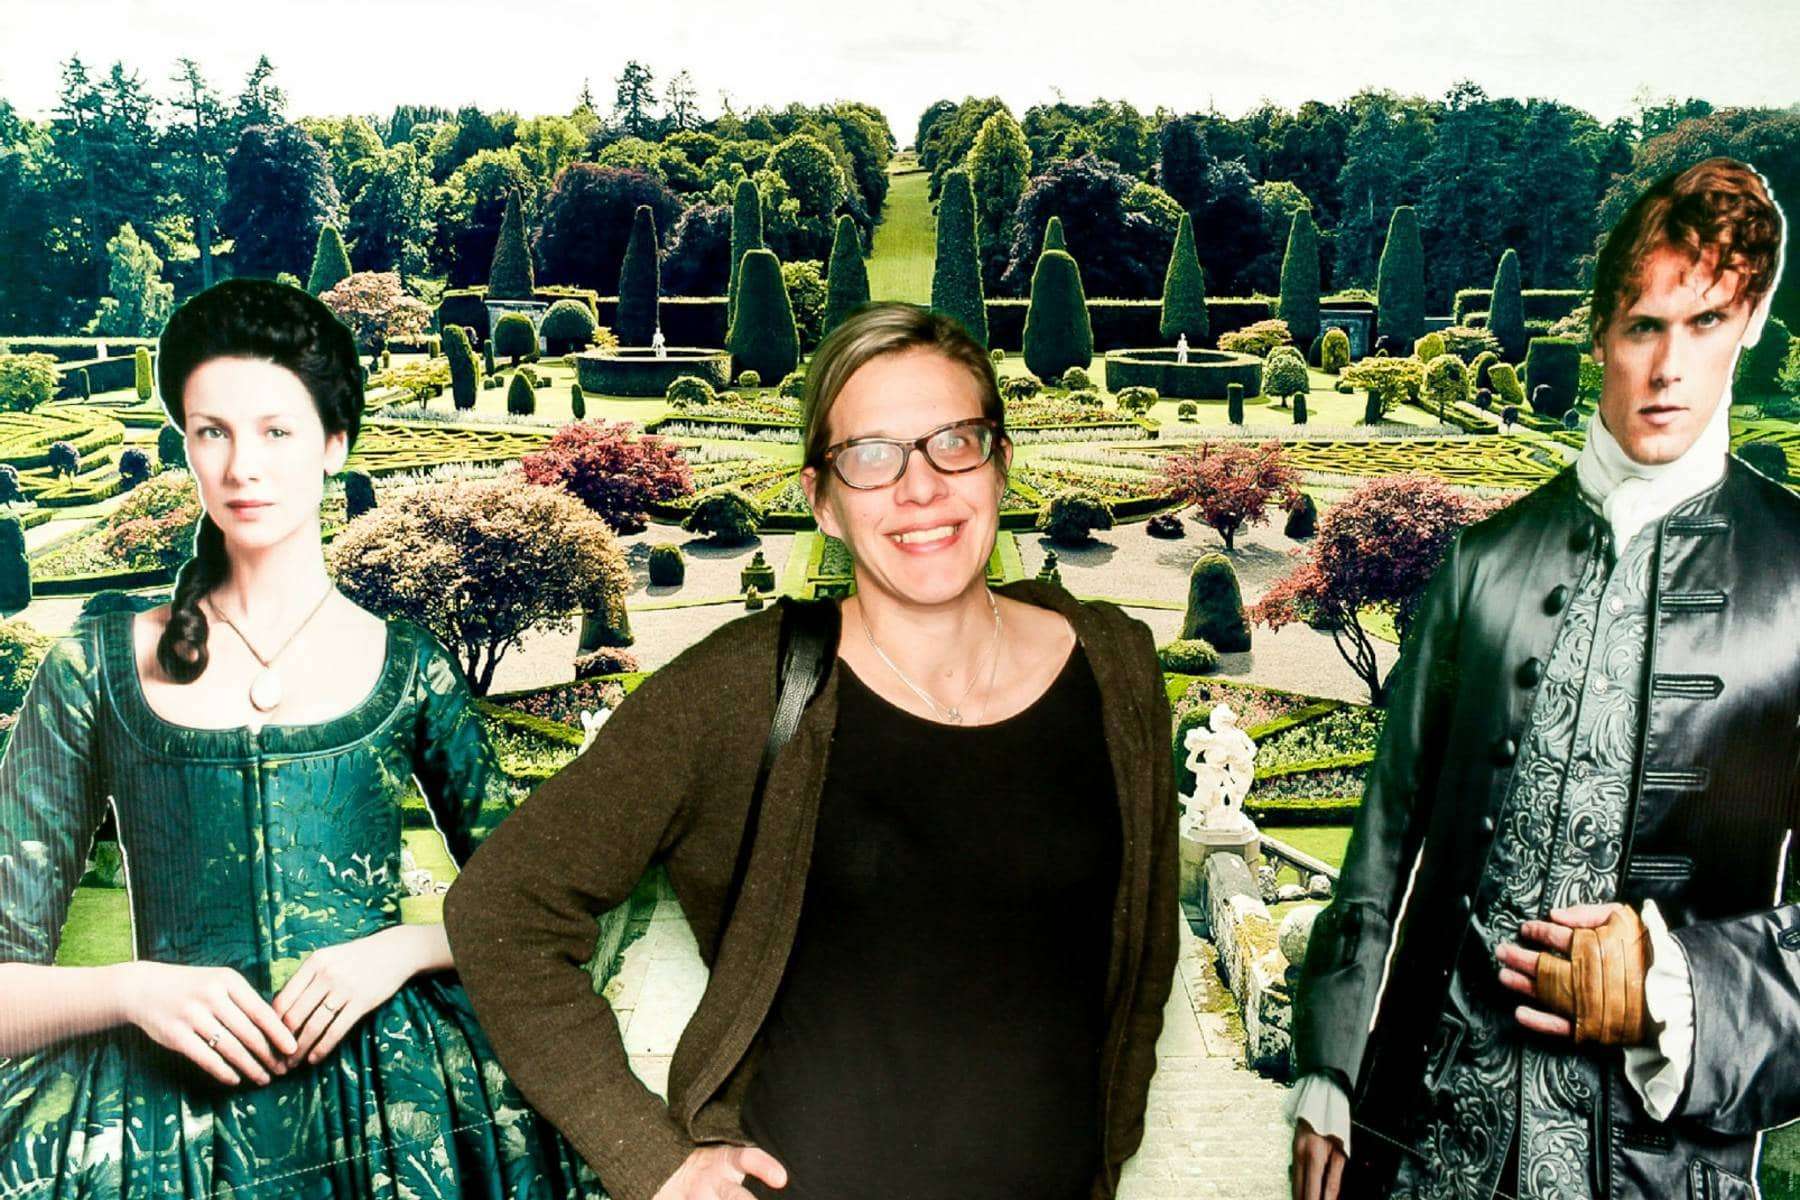 Outlander Green Screen Photo Opp!